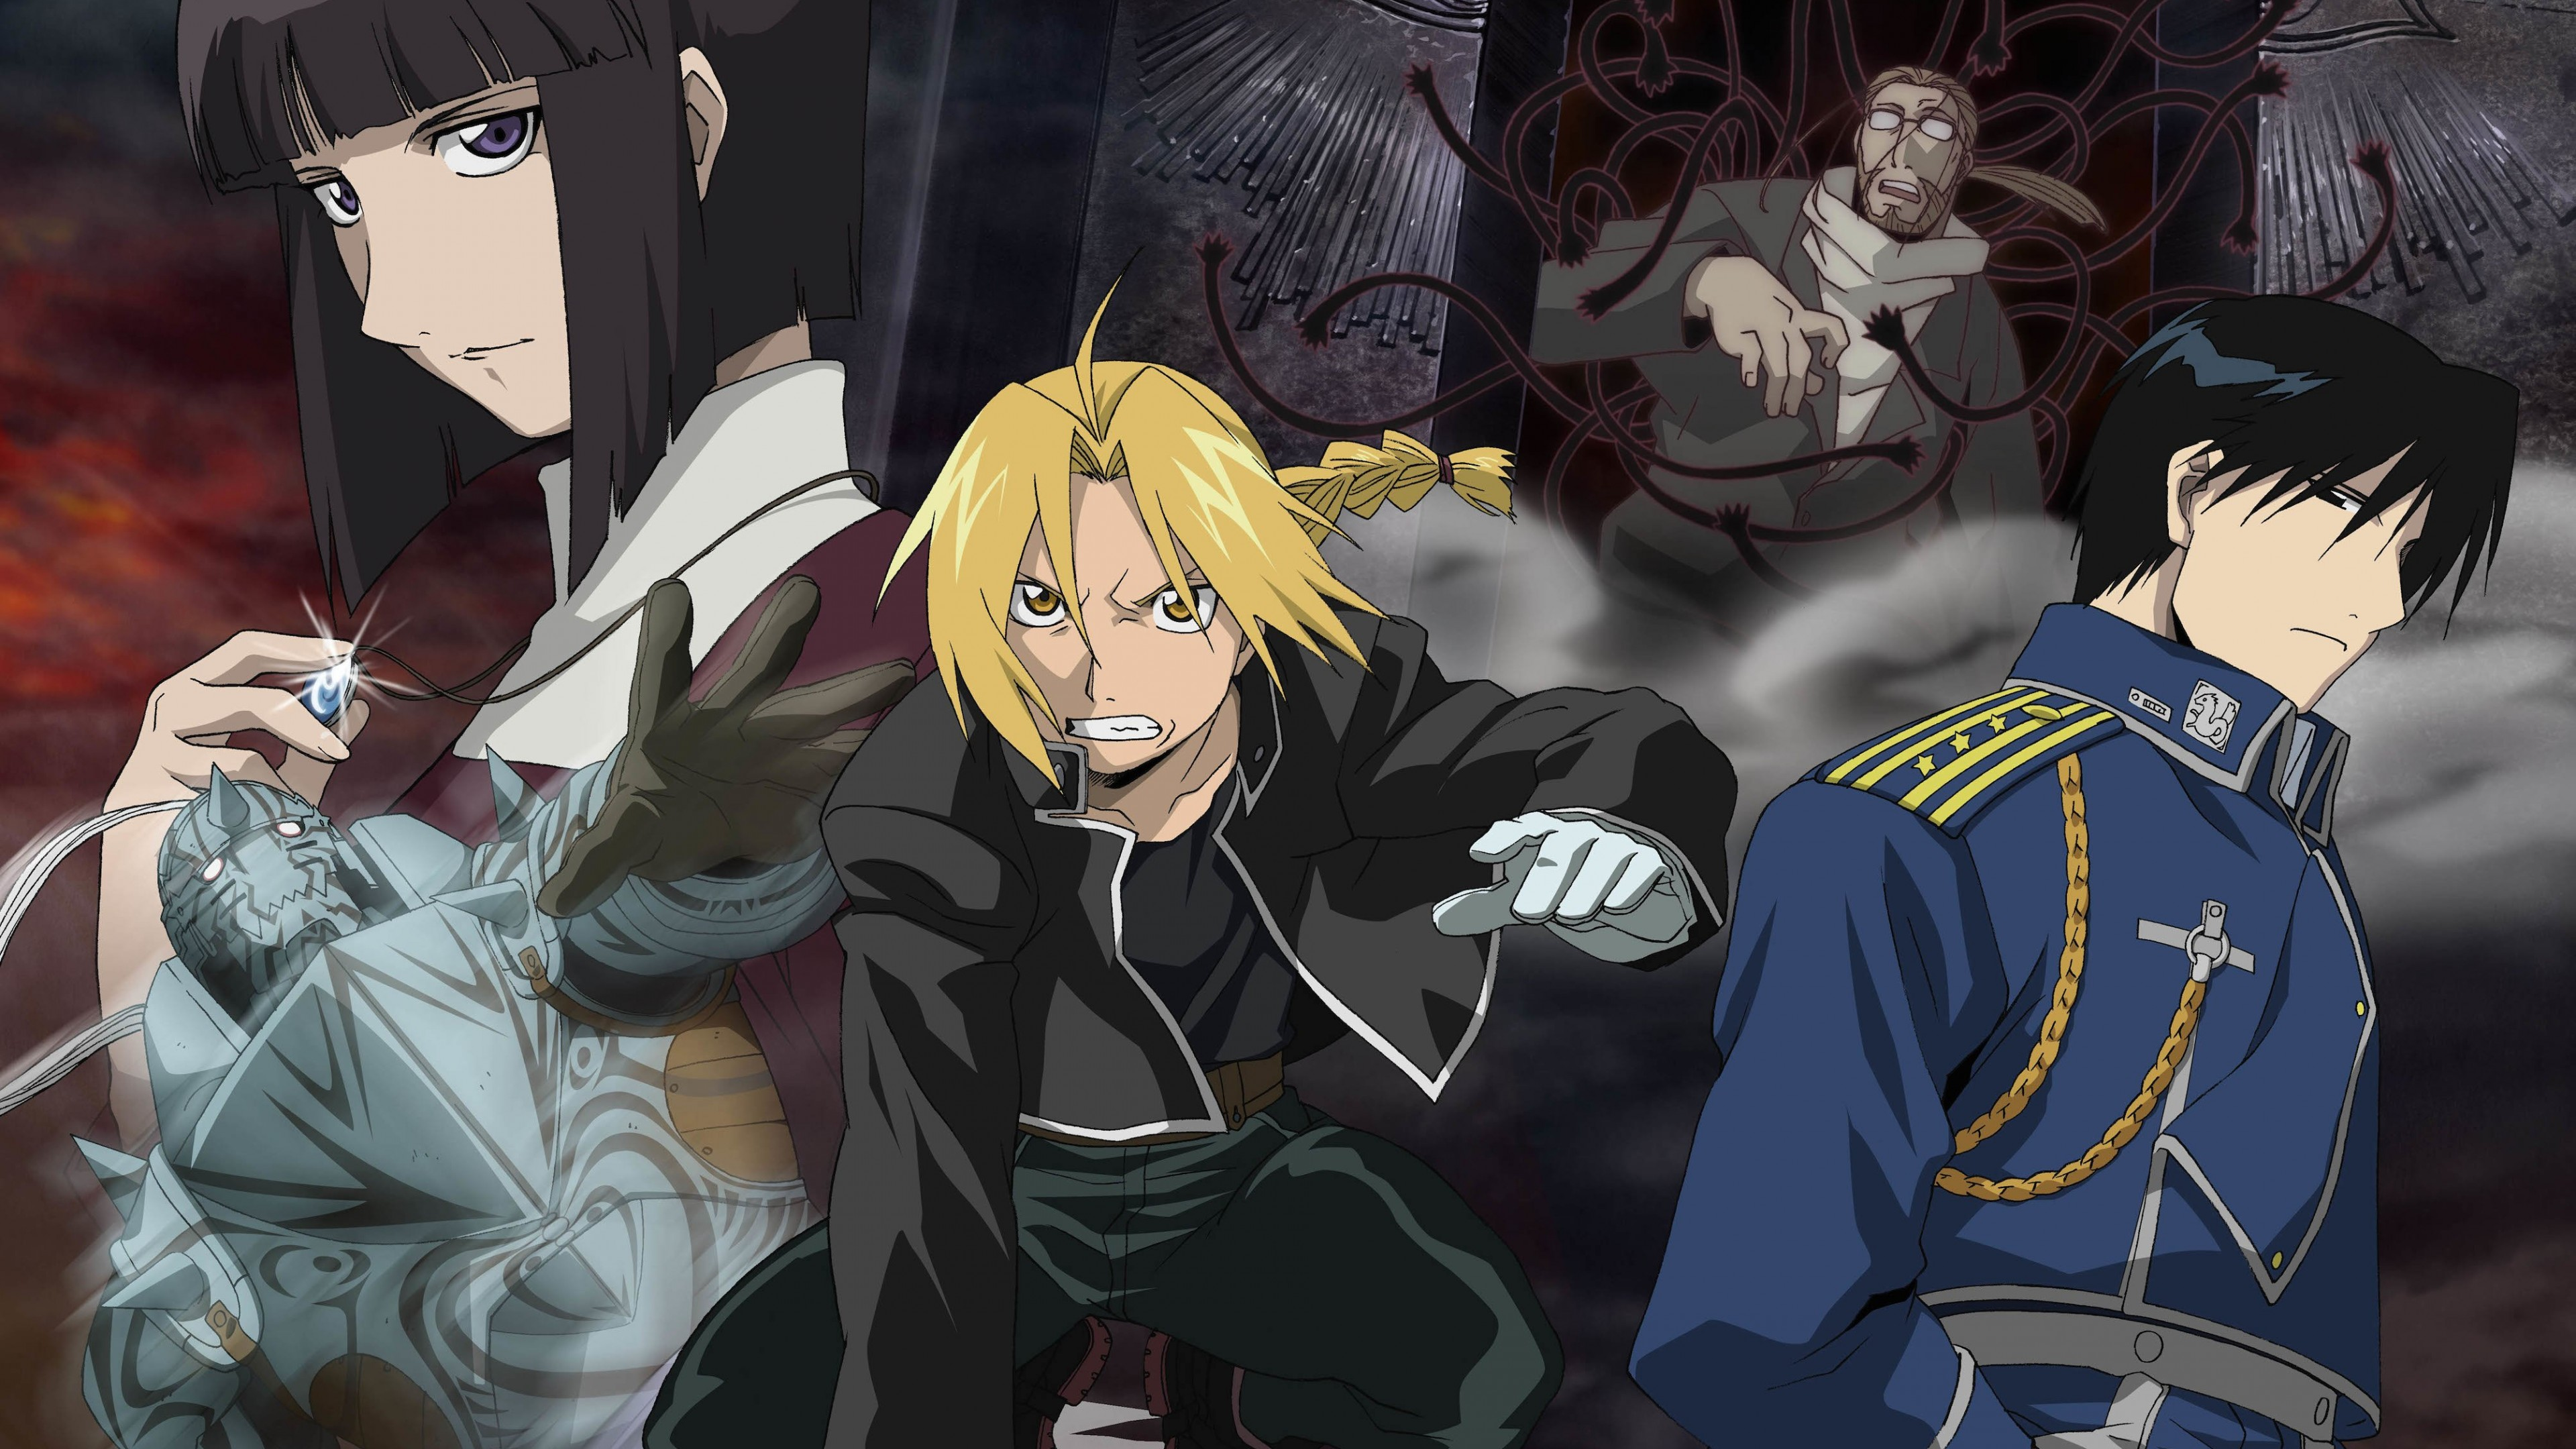 Fullmetal Alchemist Wallpaper for Desktop 4K 3840x2160